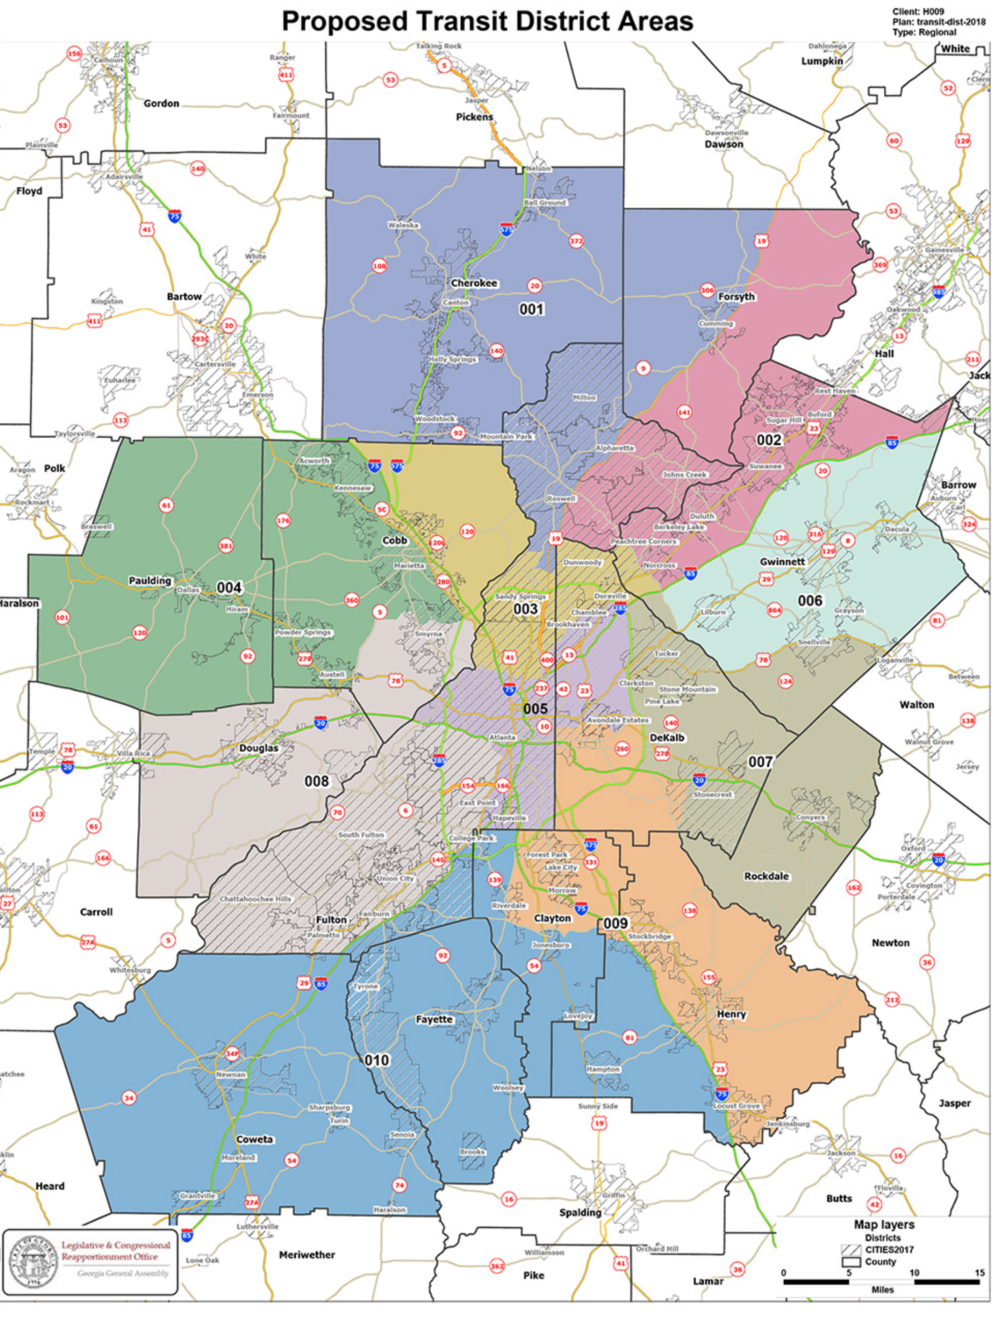 The 10 special districts for The ATL carved out of the 13 county metro region. These districts will send citizen representatives to The ATL board, and are intended to match commuting corridors and encourage regional thinking. Credit: Atlanta Regional Commission